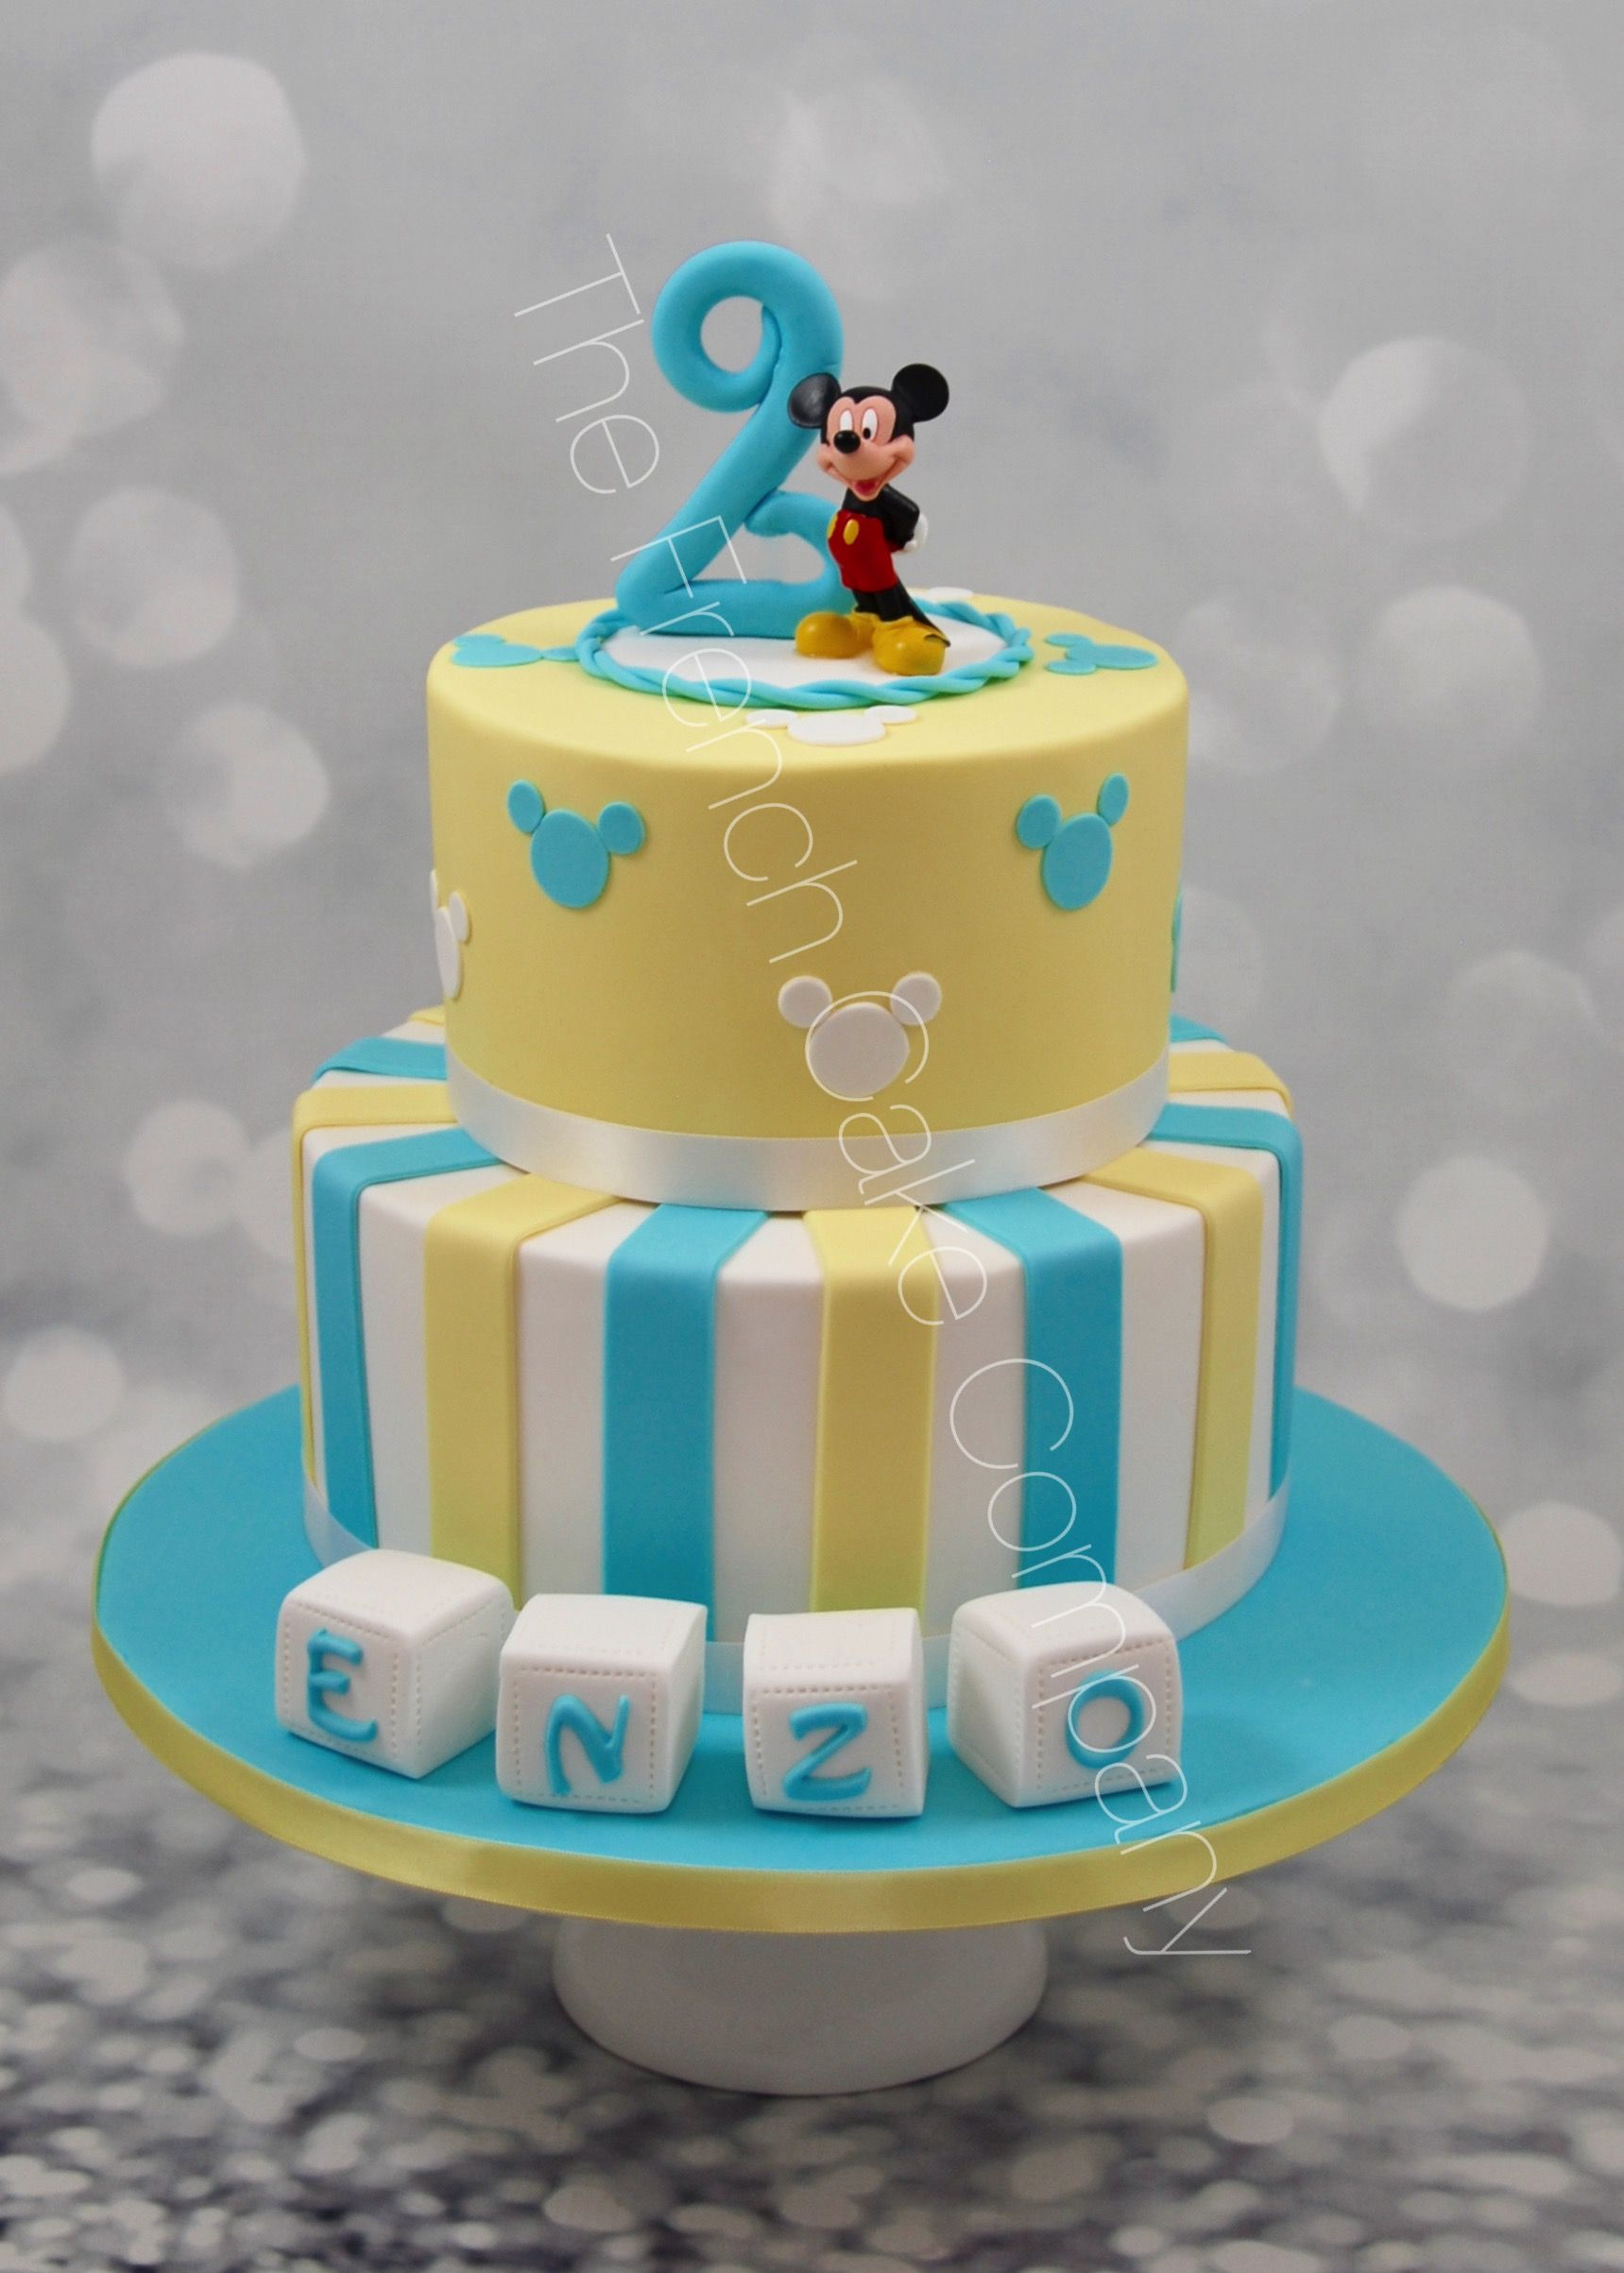 pi ce mont e anniversaire 2 ans th me mickey cake design belgique gateau anniversaire. Black Bedroom Furniture Sets. Home Design Ideas